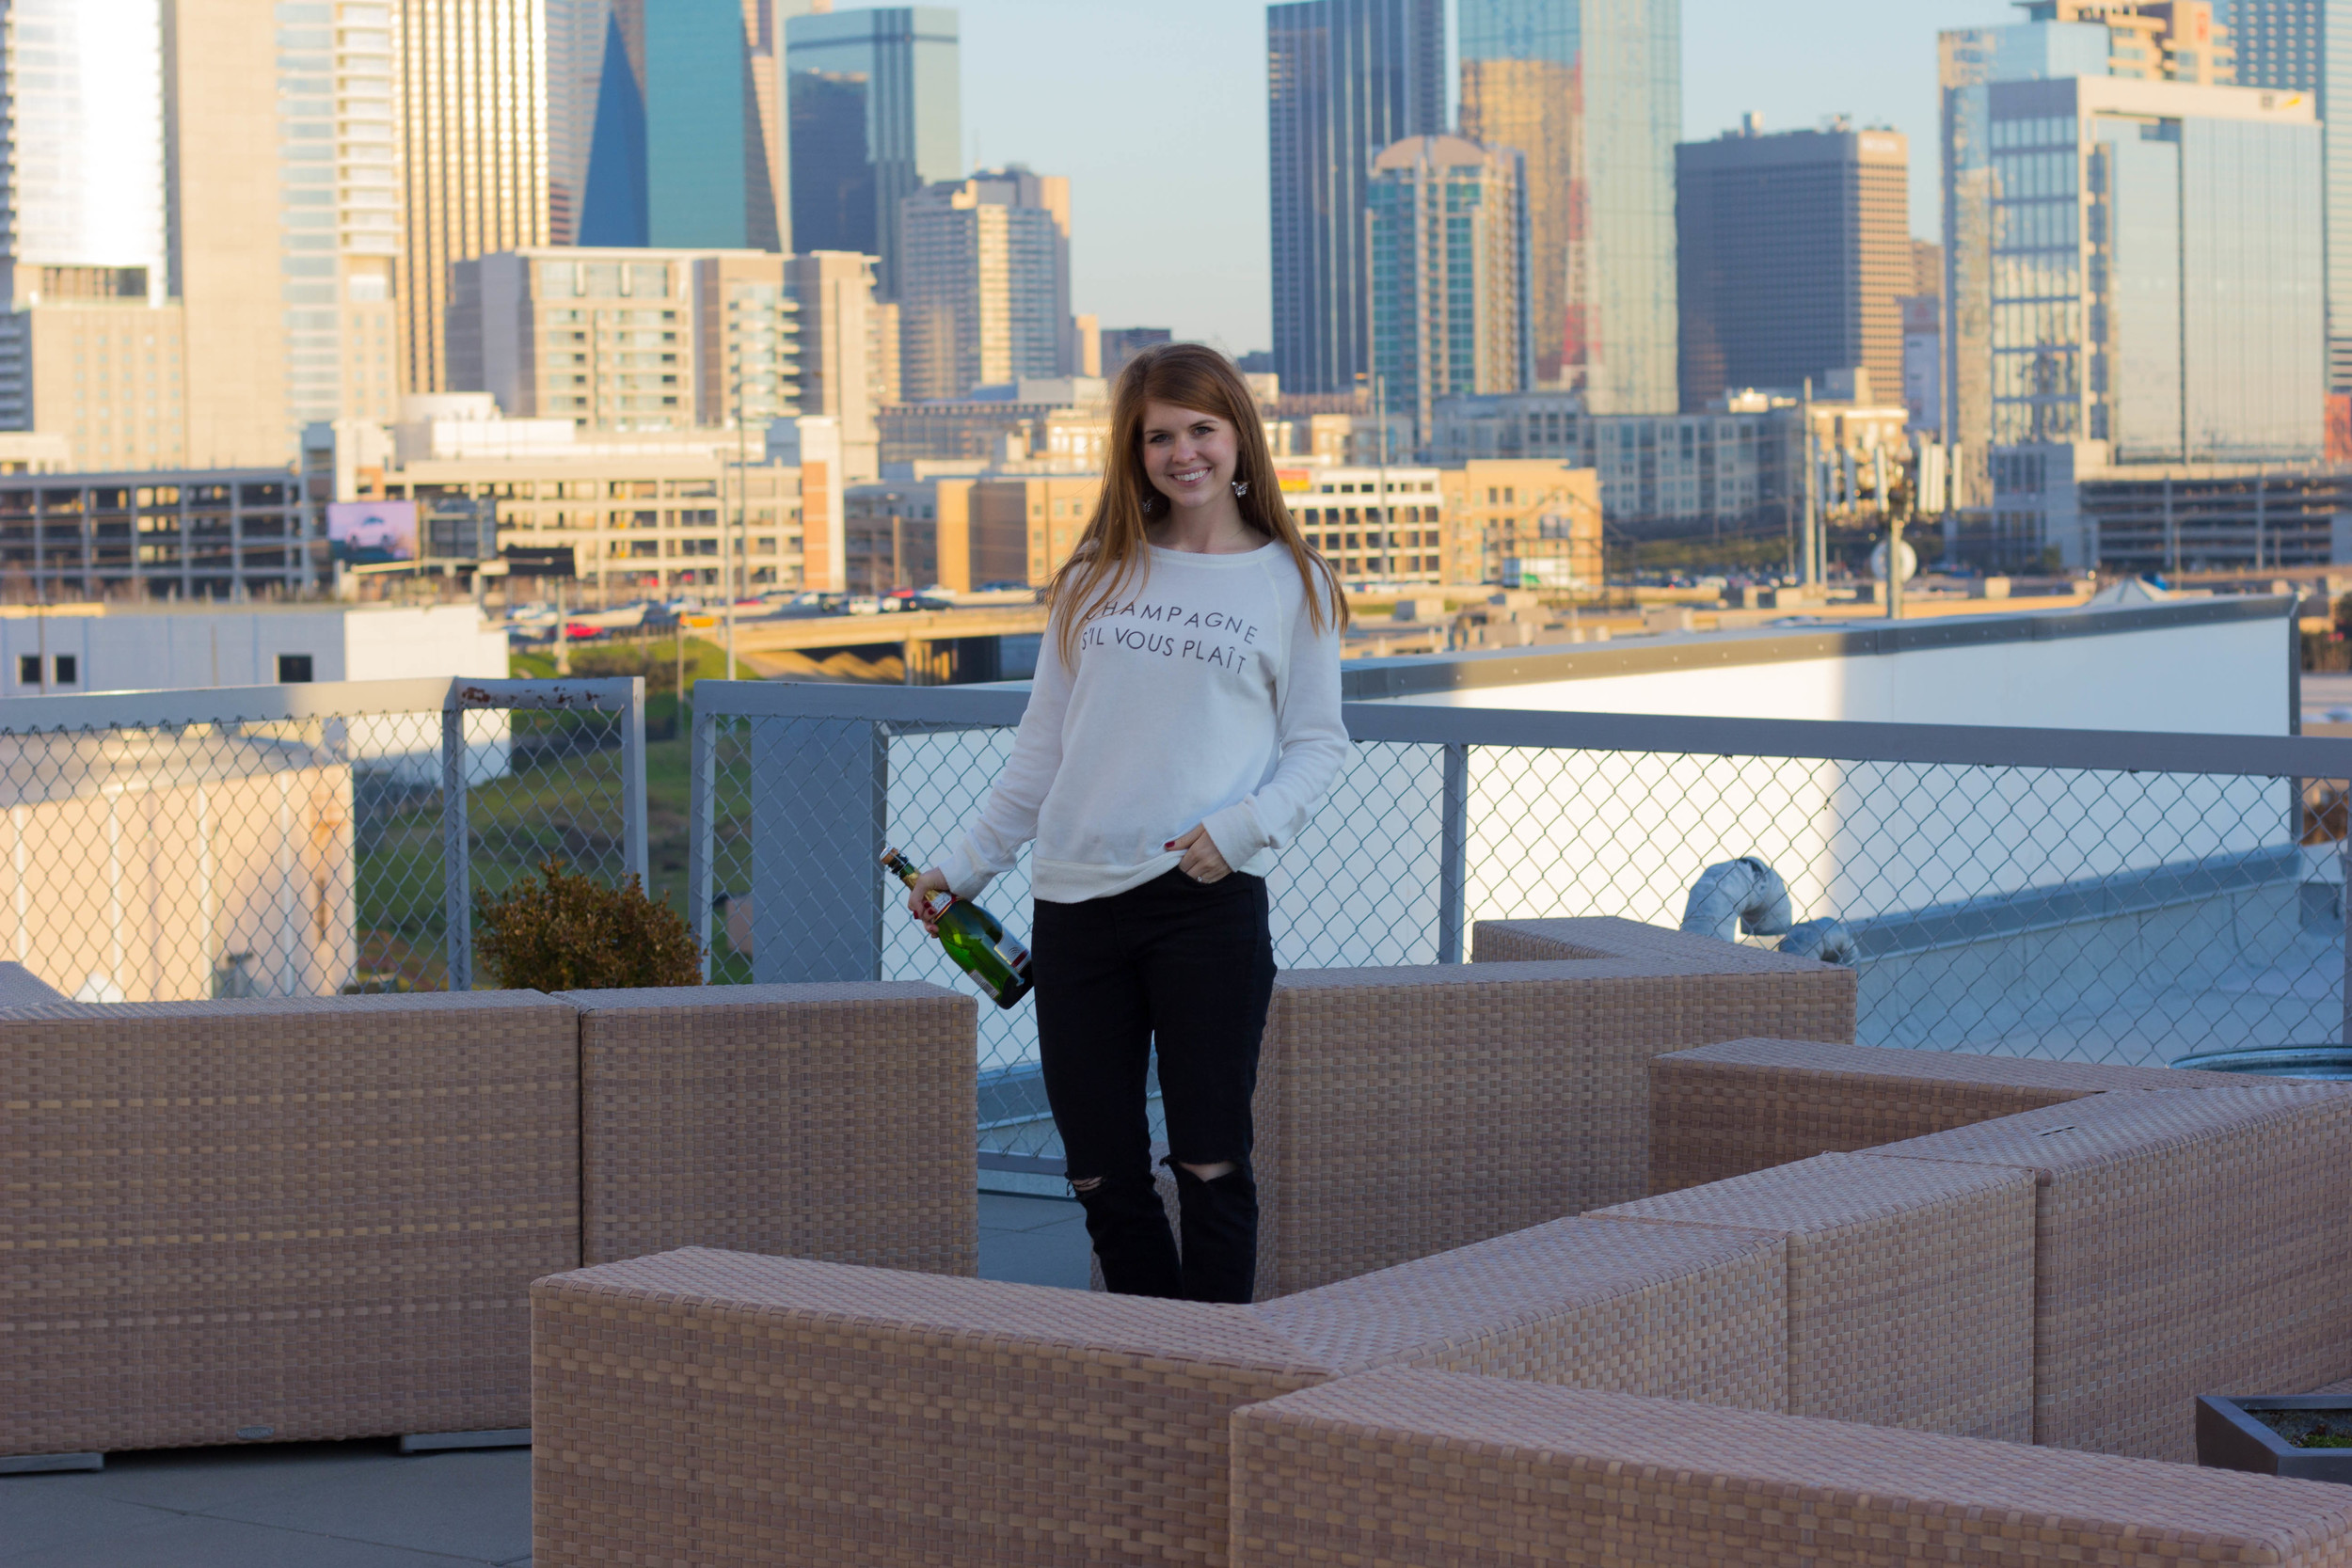 daydreamer champagne crew, pistola ripped jeans, frye boots, dallas, skyline